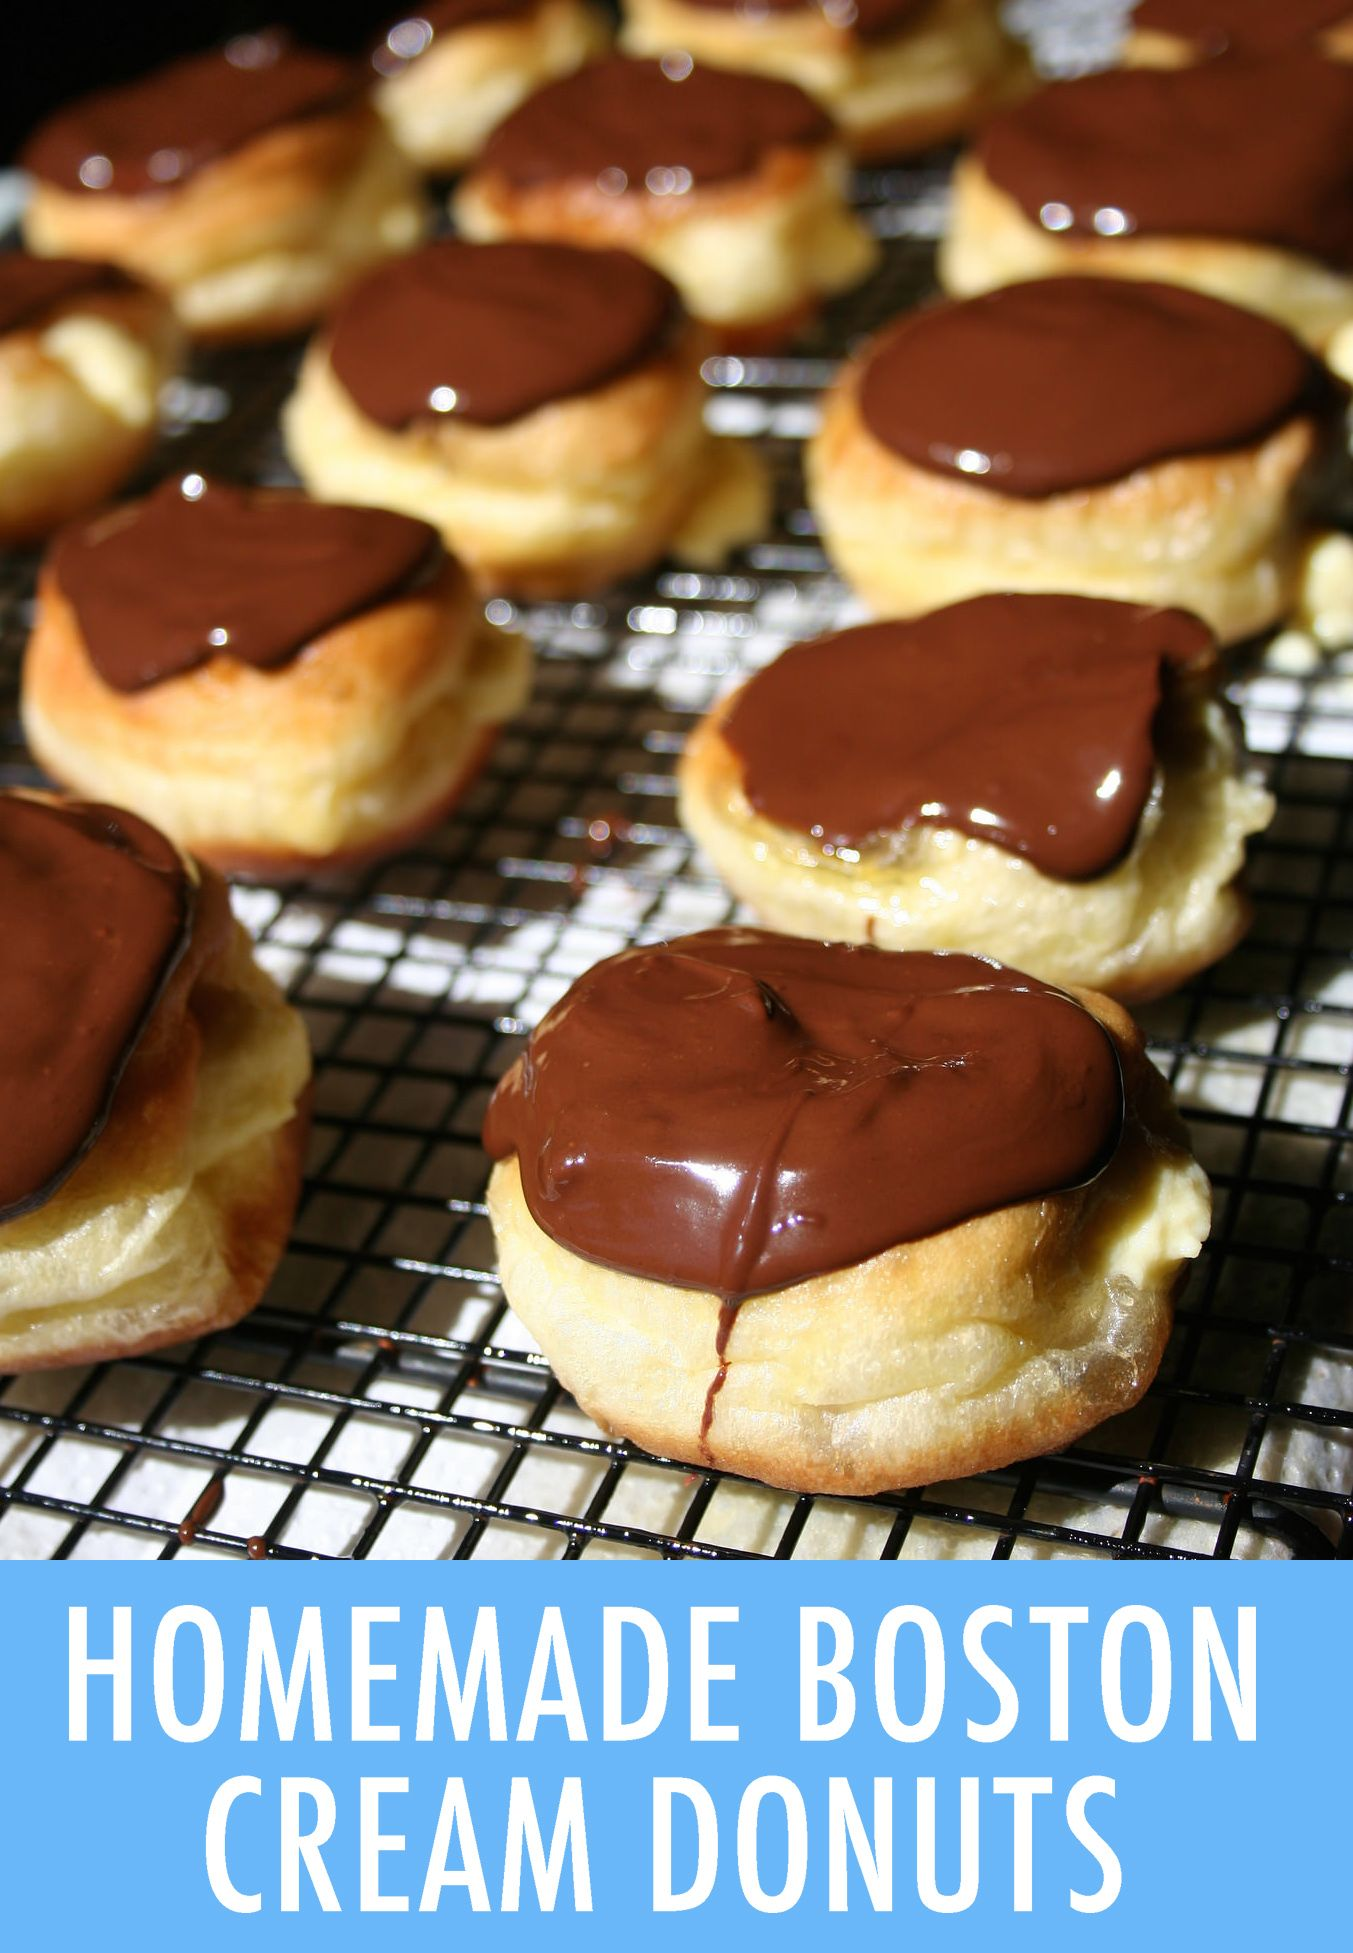 12 Donut Recipes So You Can Make Your Own | Boston cream donuts ...